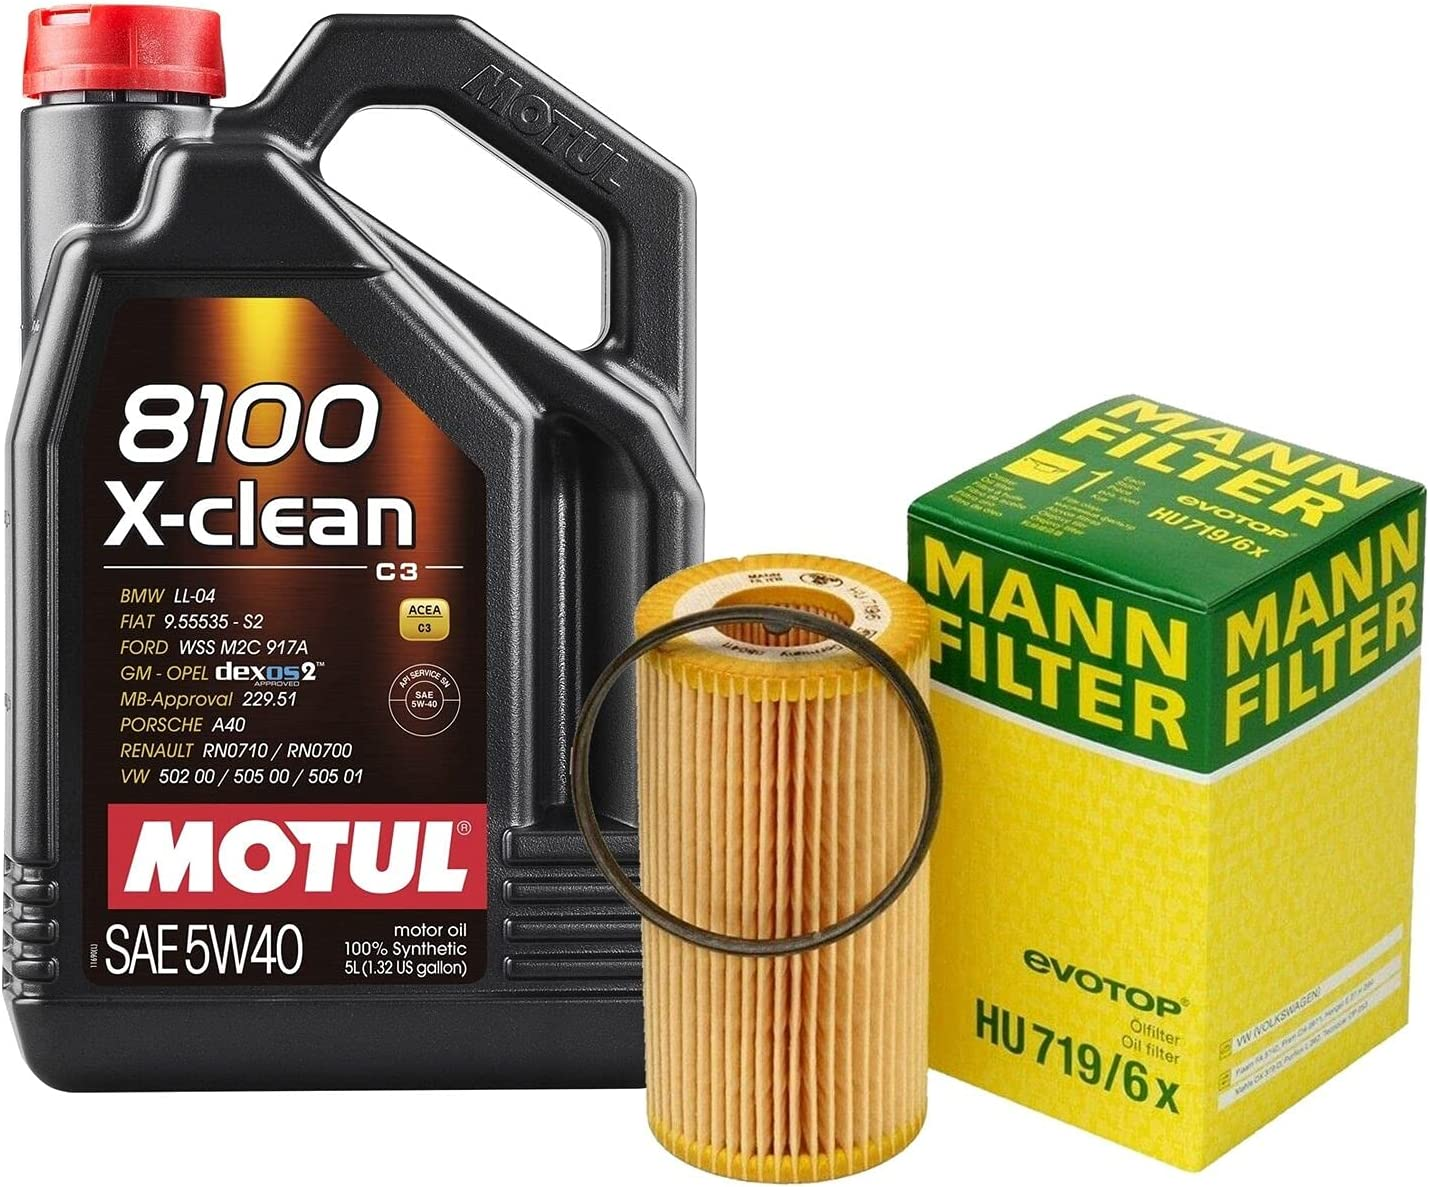 5L 8100 X-CLEAN 5W-40 Filter List price Motor Oil B7 A4 kit Change Turb All stores are sold 2.0